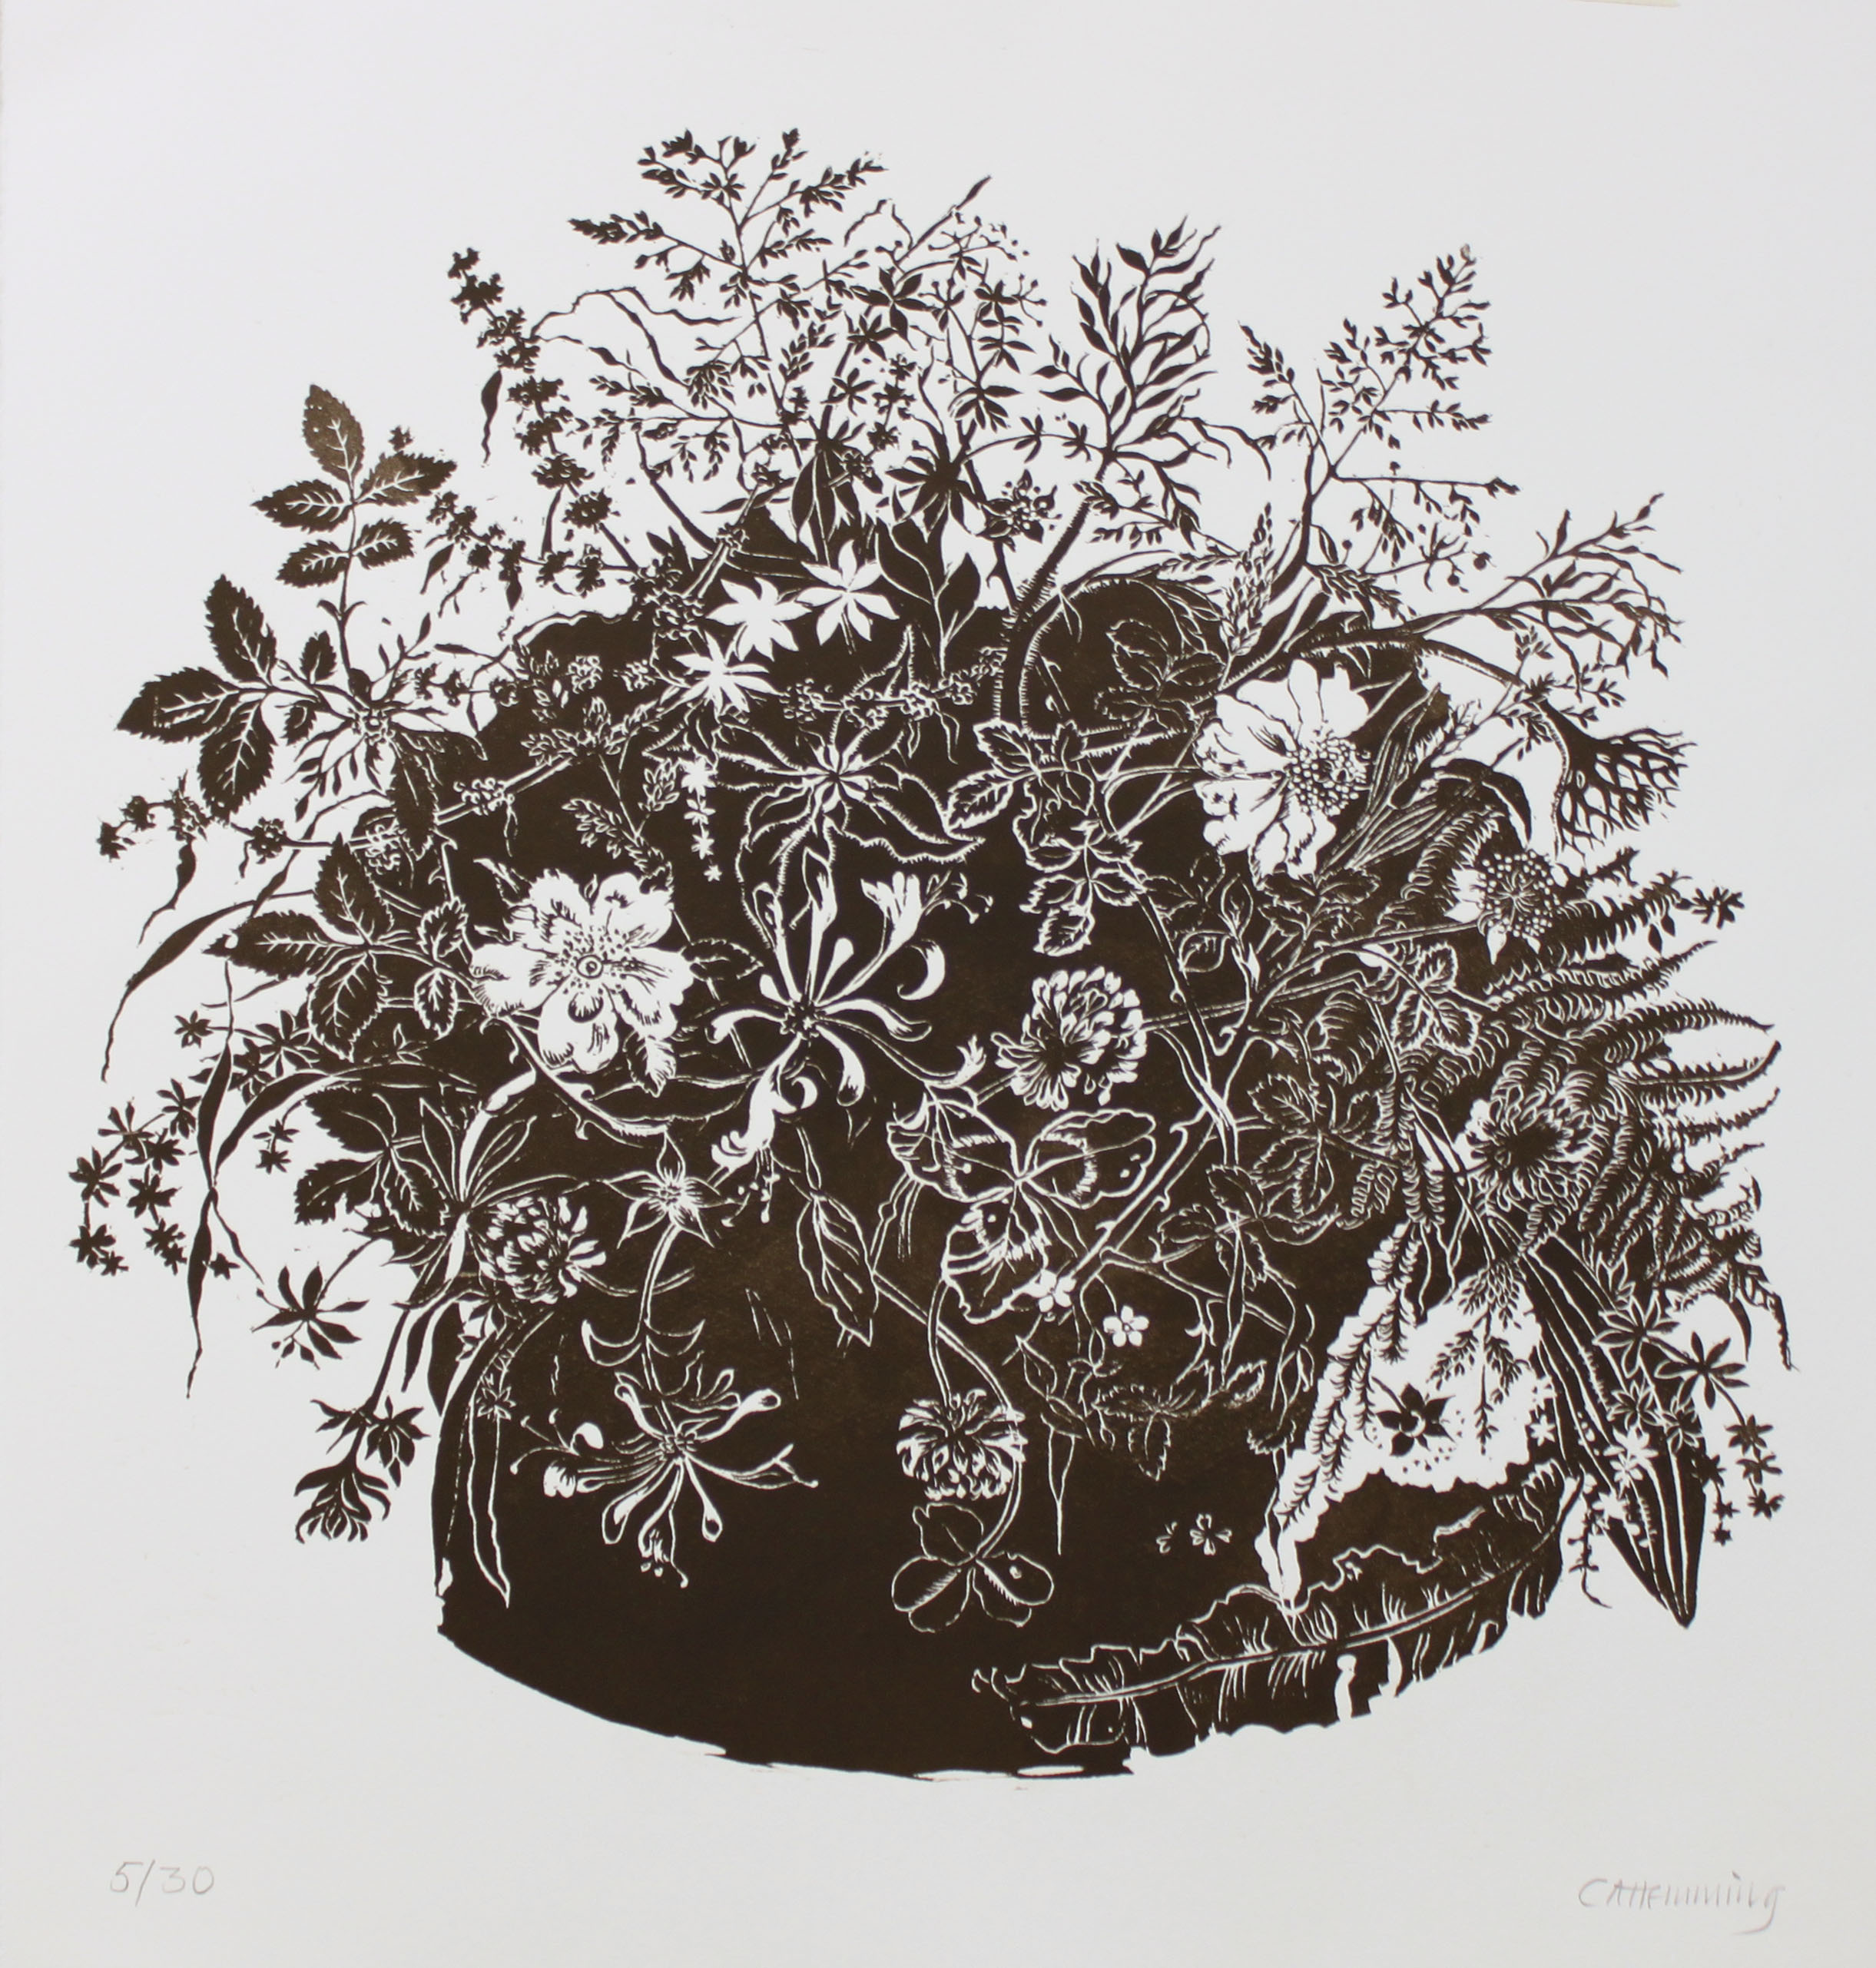 Caroline Hemming June Hedgerow 60 x 60 cm limited edition (30) Lino print £ 325.00 £ 385.00 (framed)